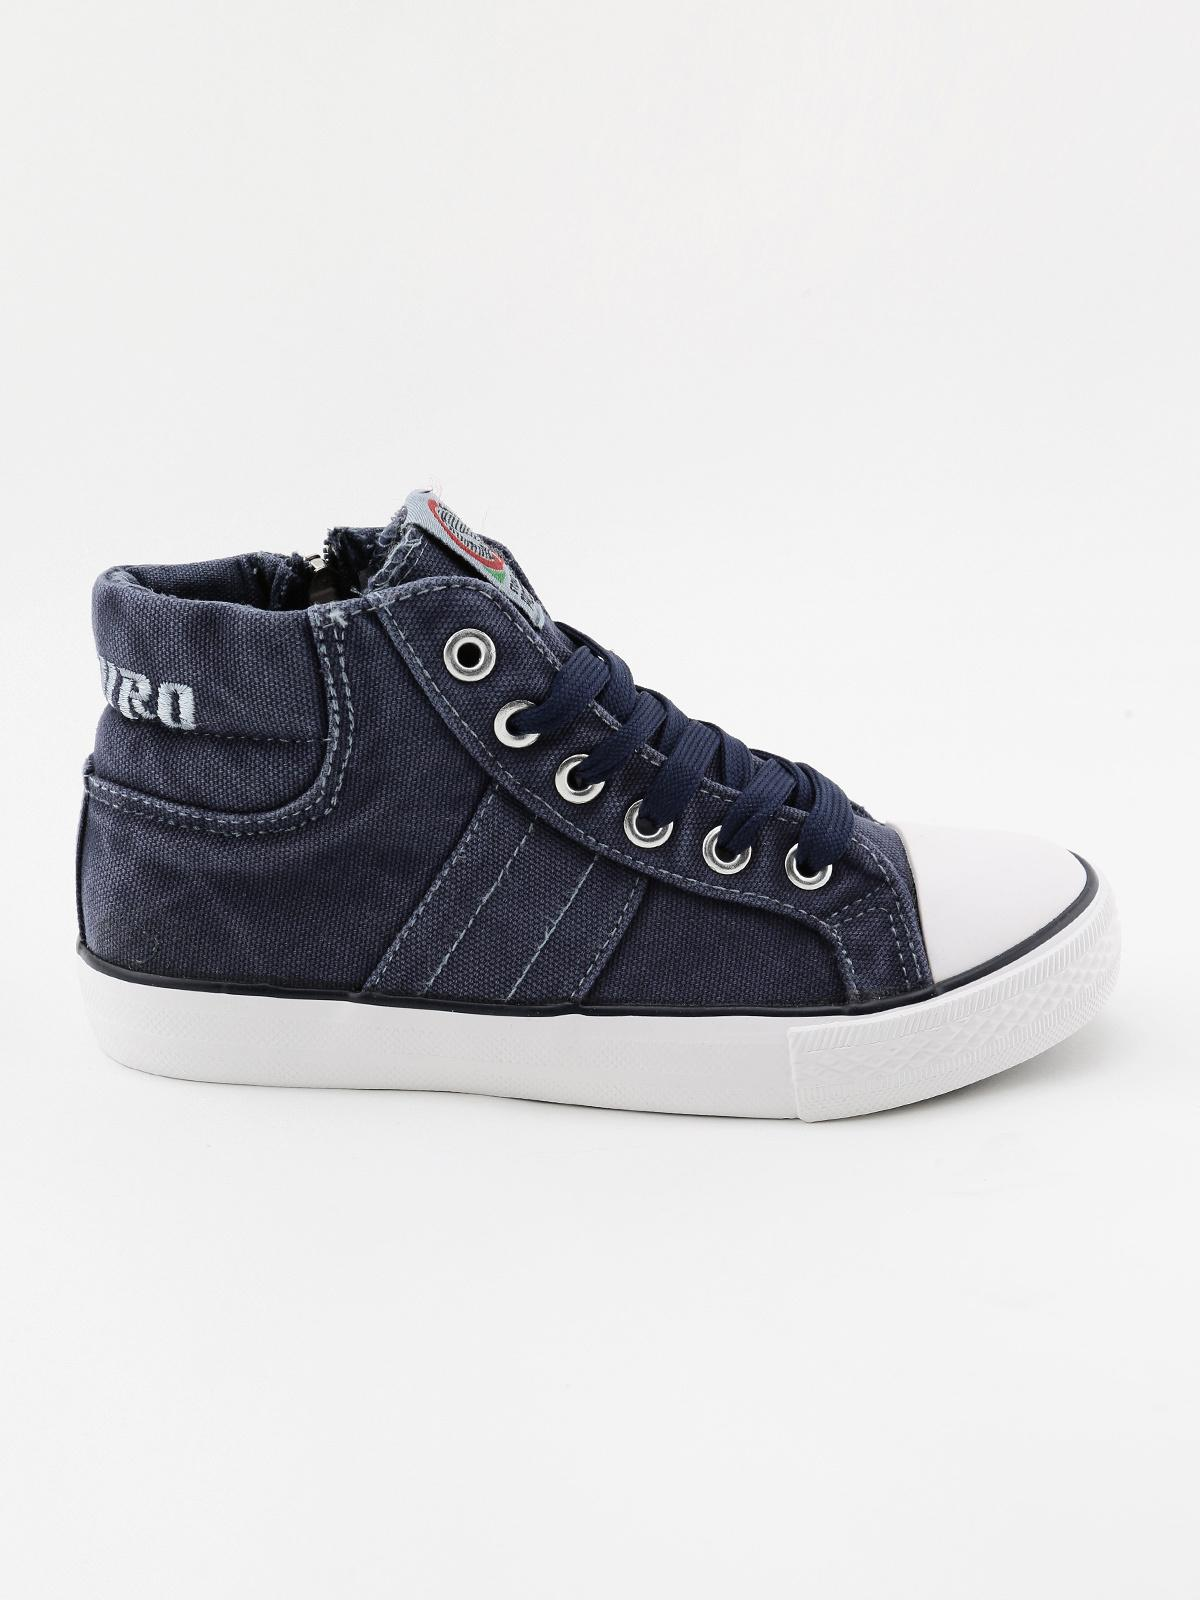 Sneakers alte stringate in tela canguro | MecShopping